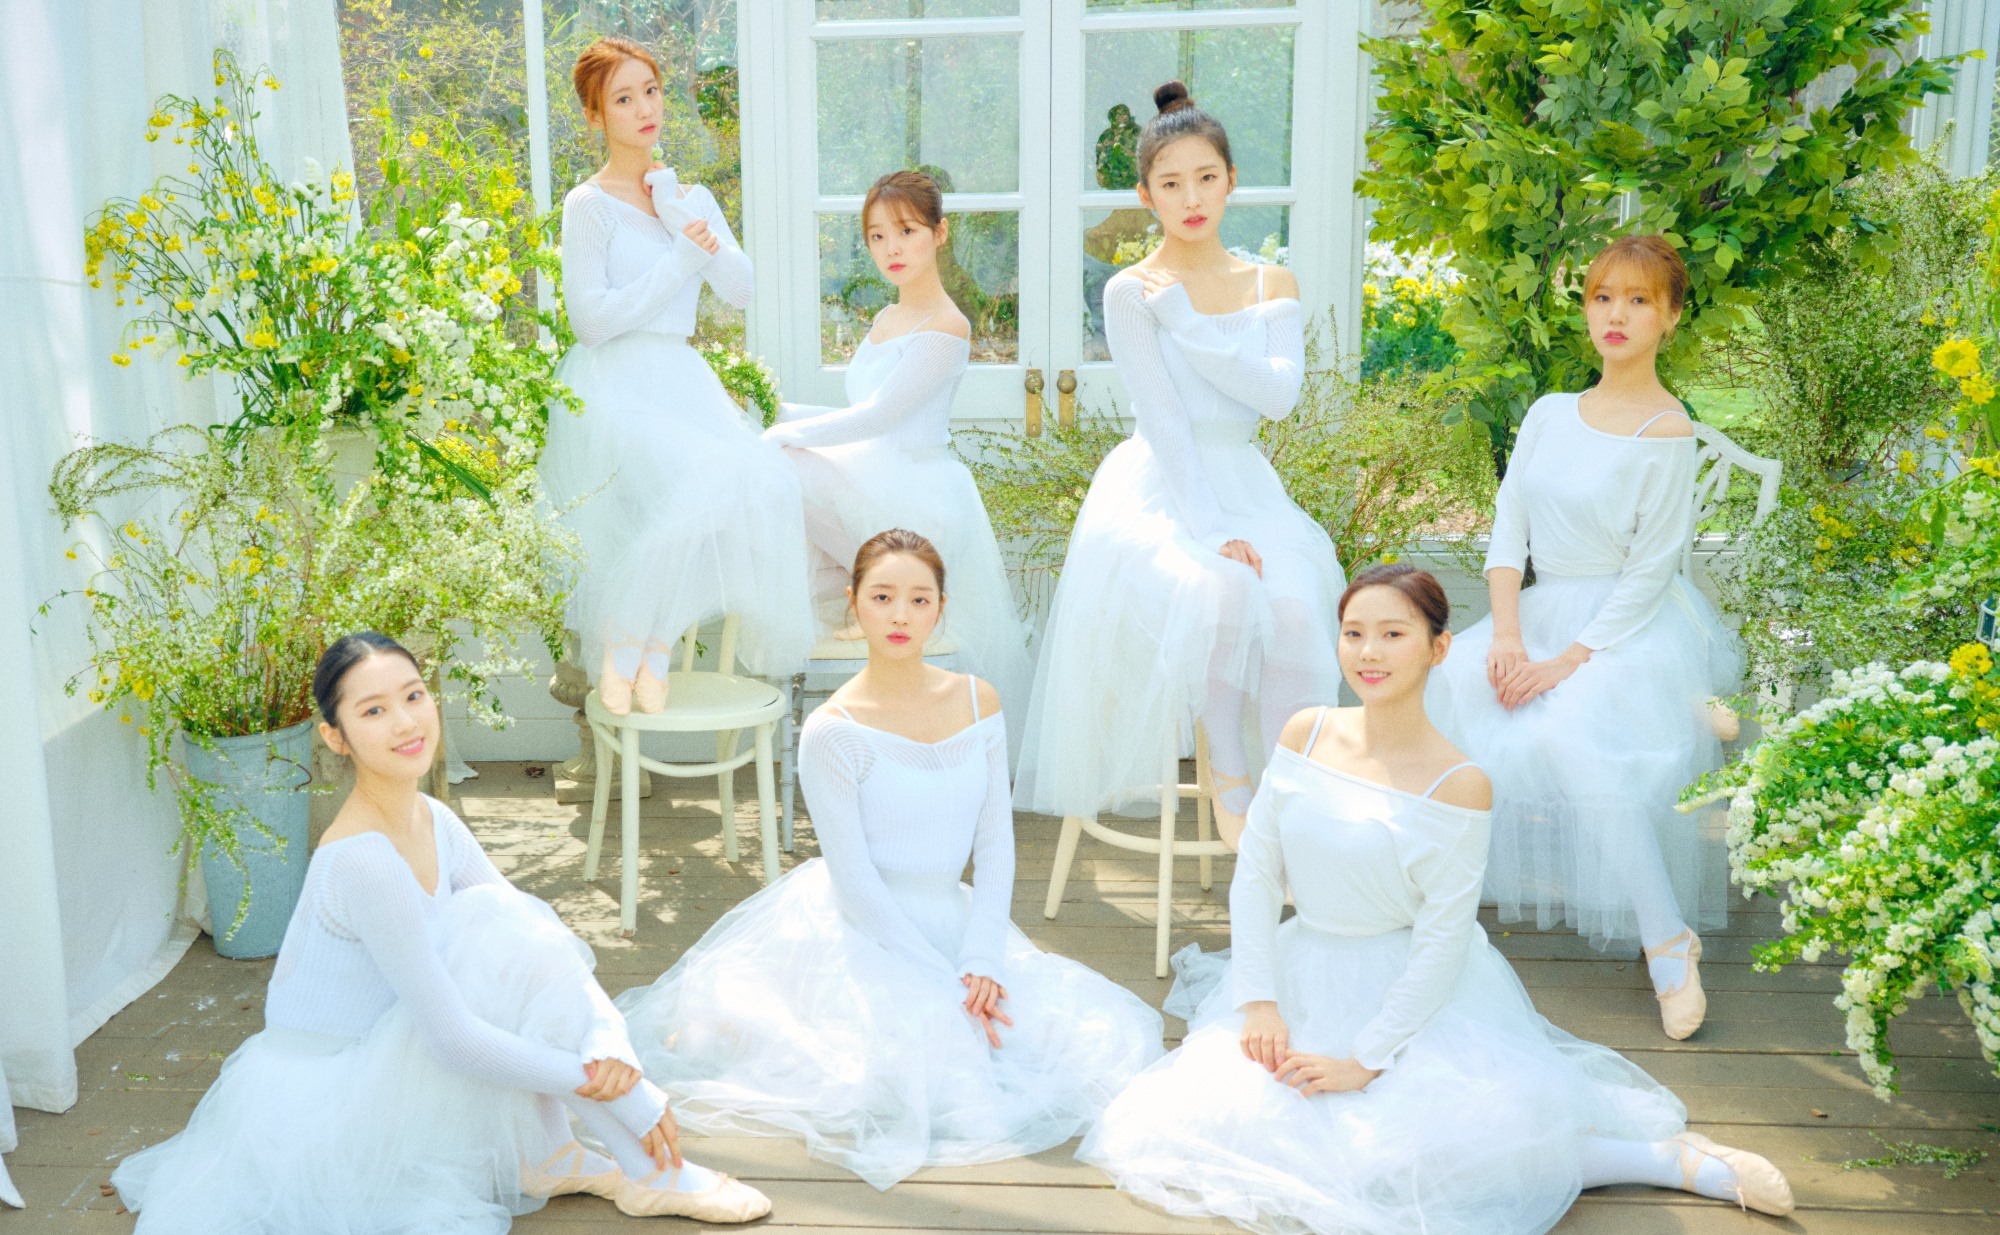 Oh My Girl The Fifth Season Concept